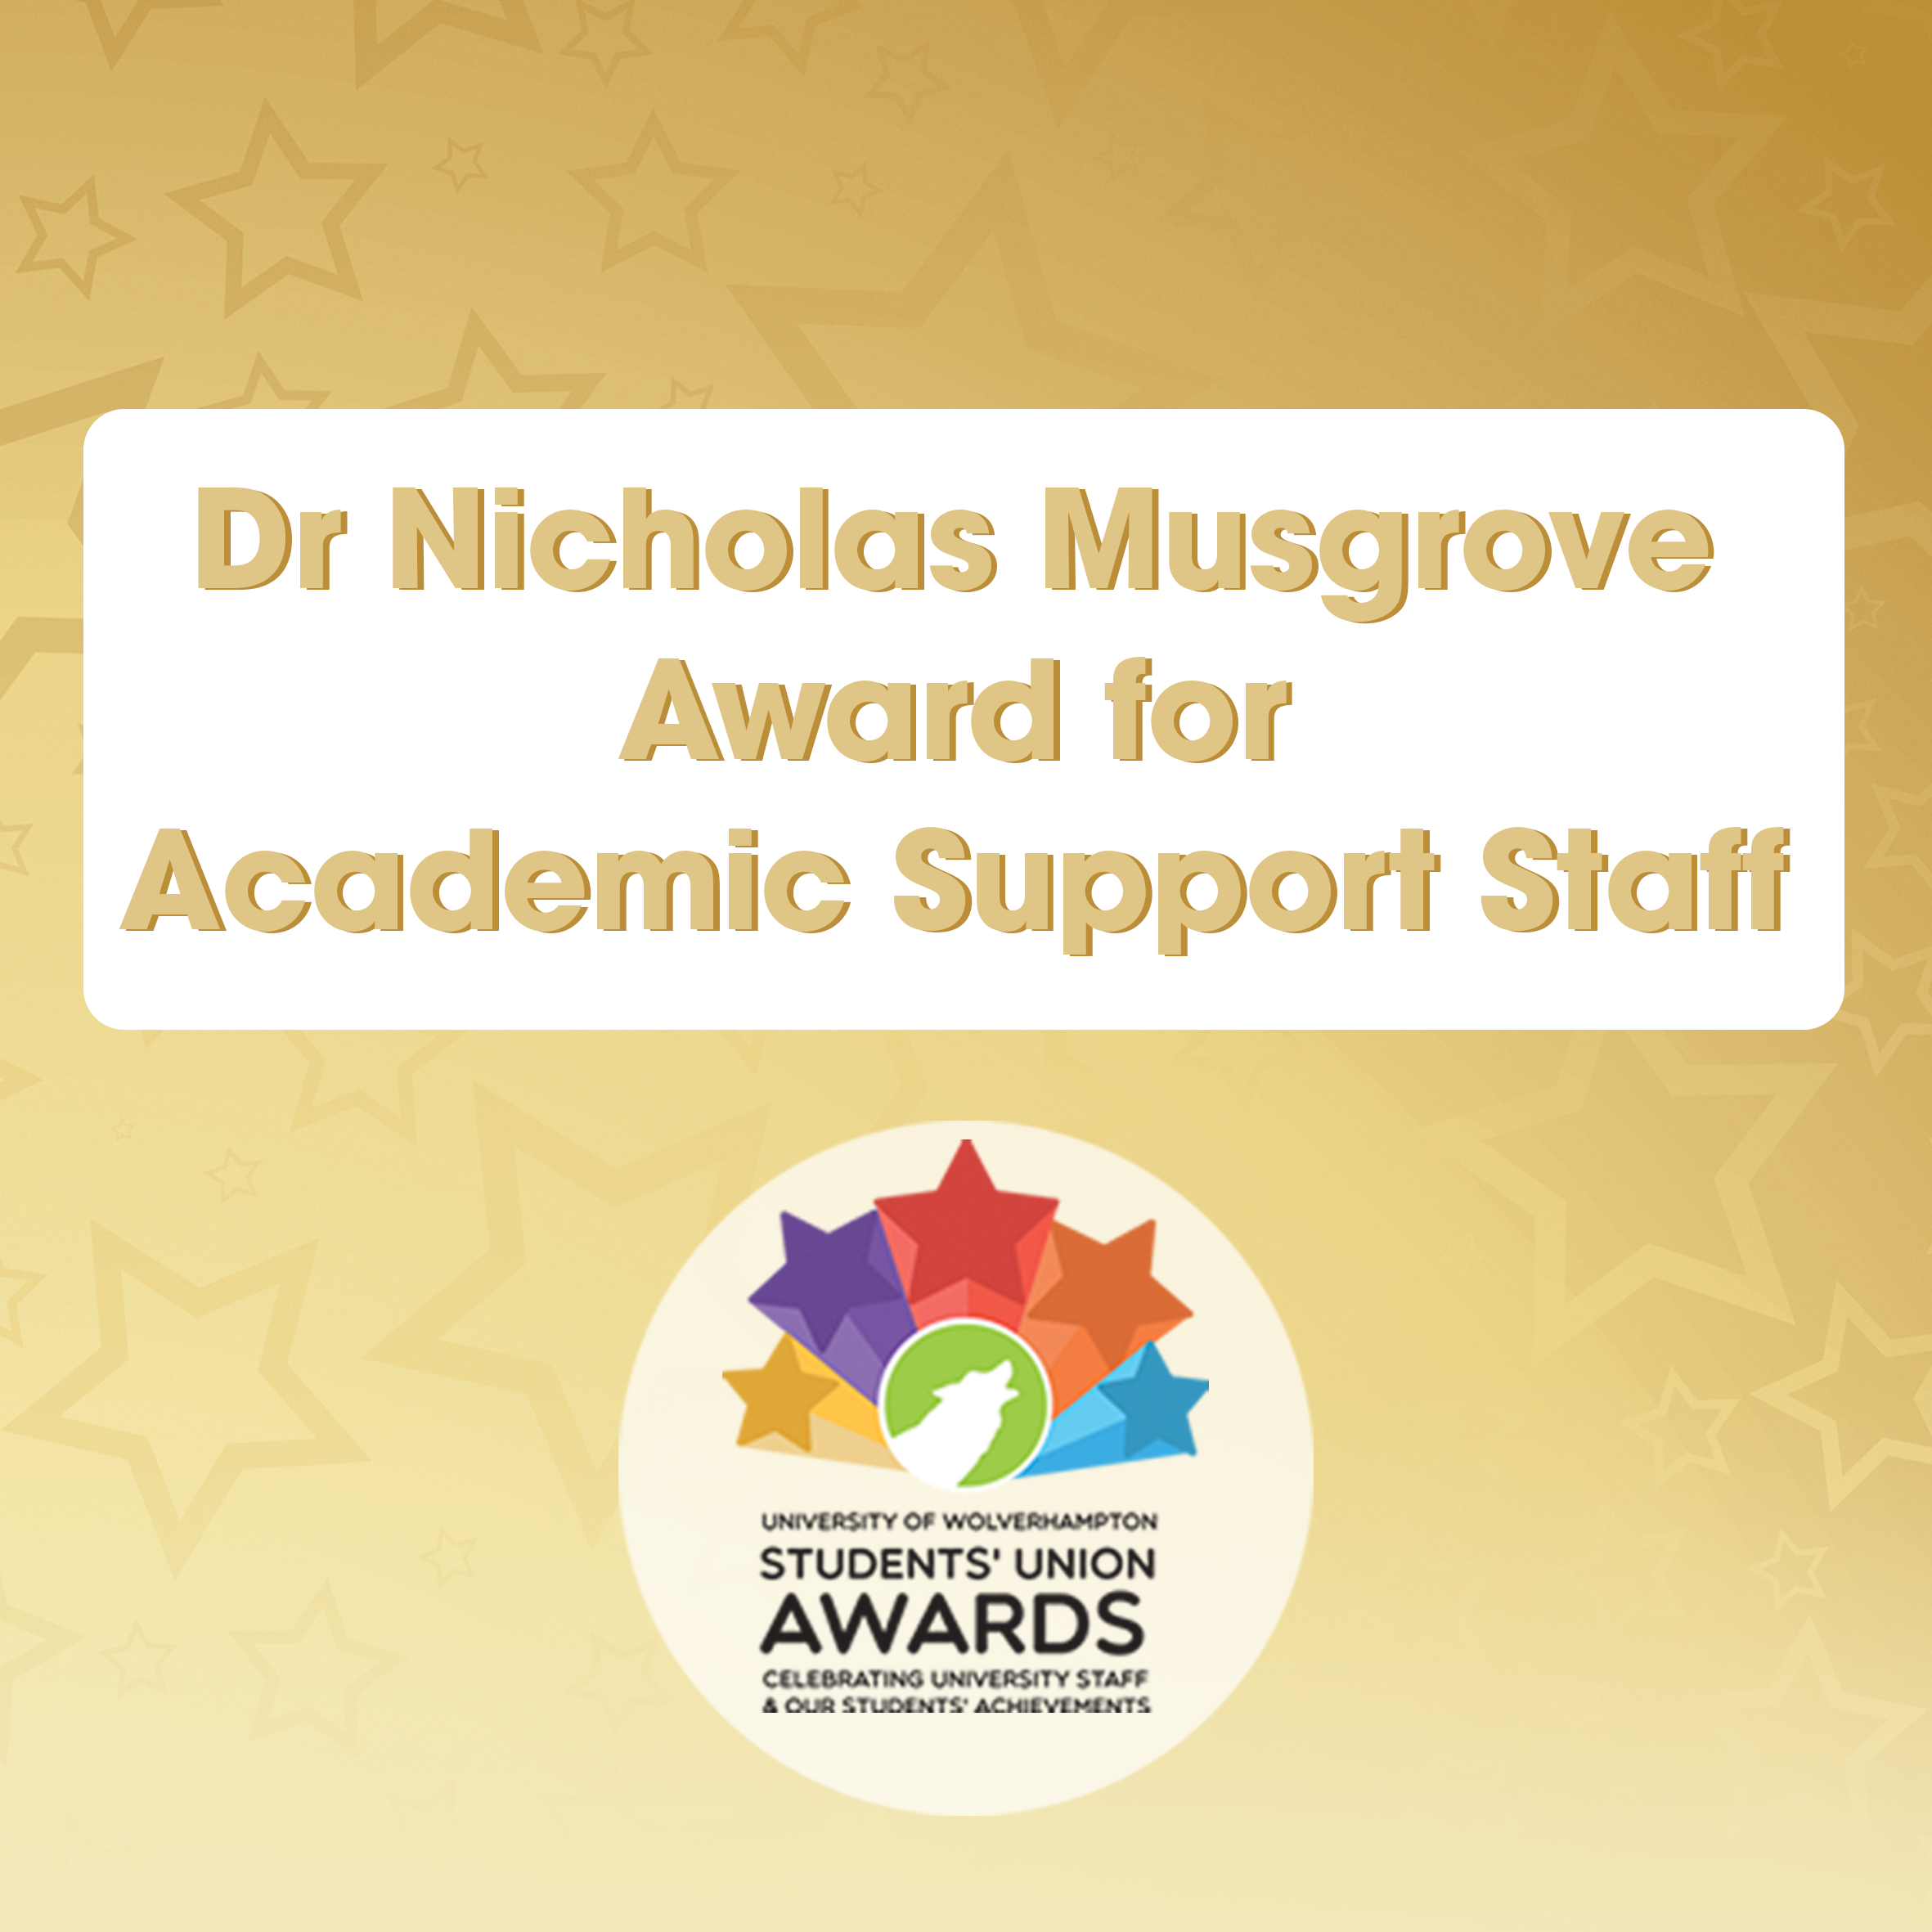 Dr Nicholas Musgrove Award for Academic Support Staff